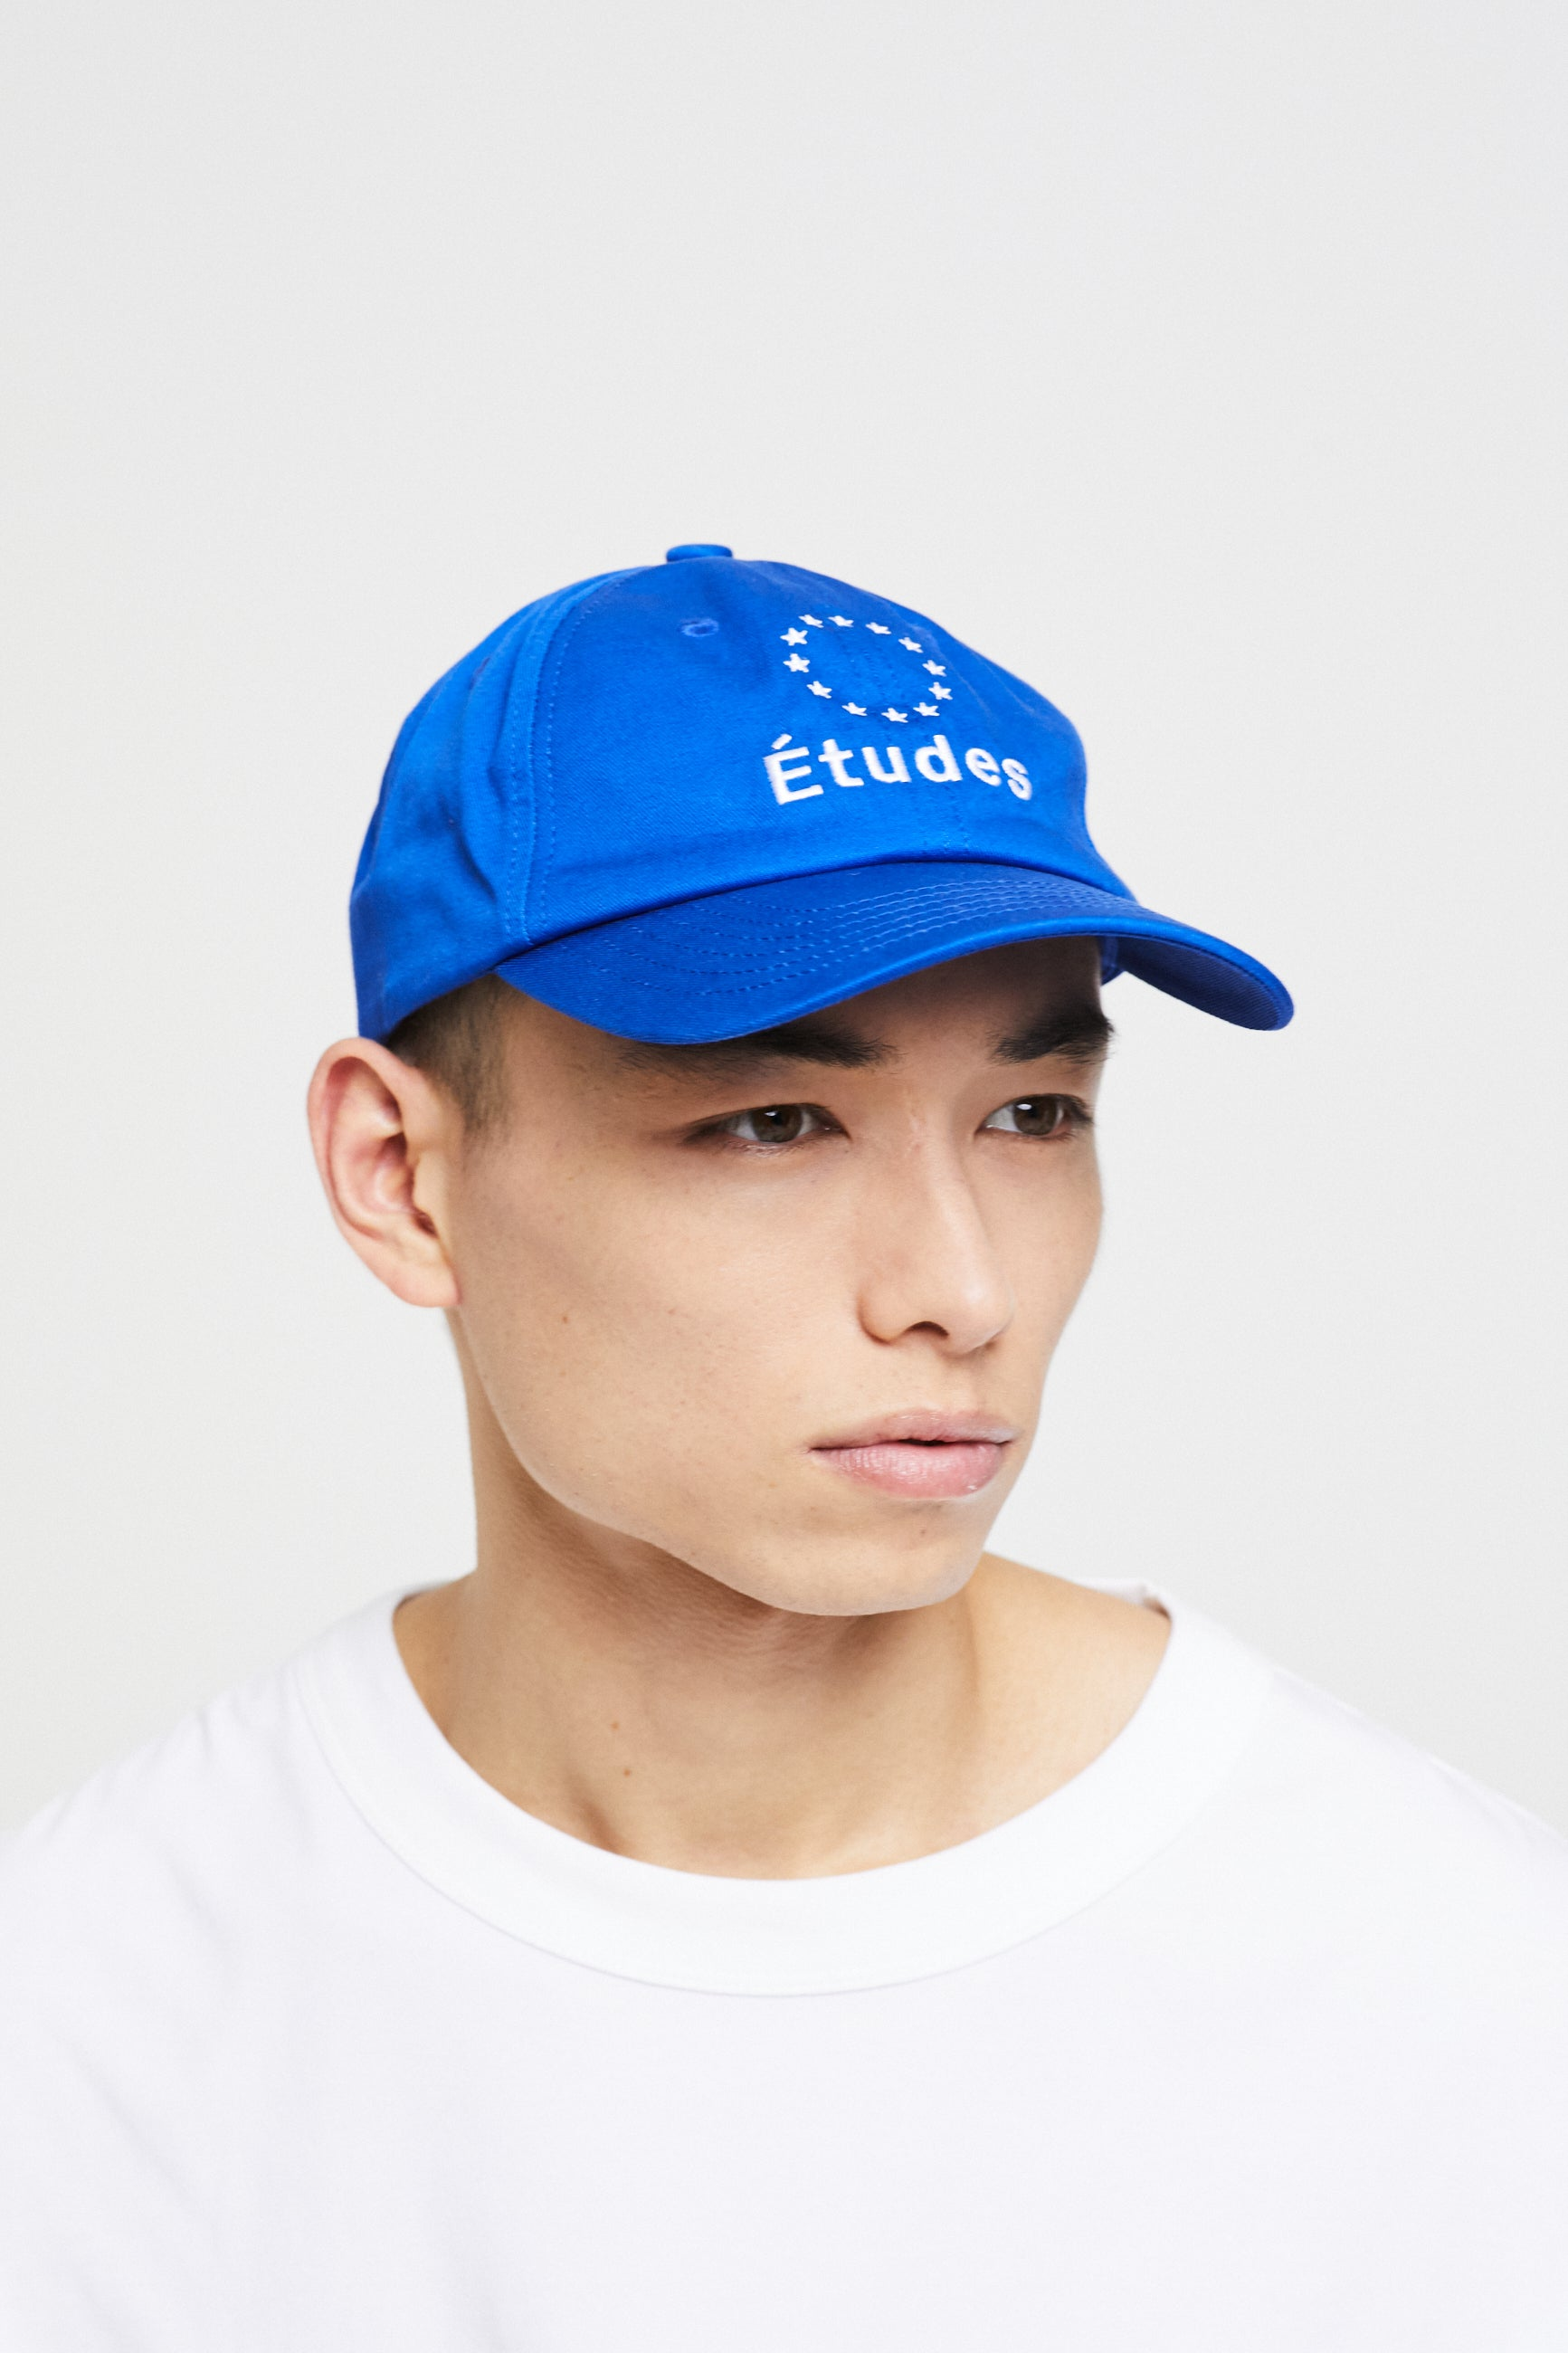 Études Booster Logo Blue Hat 2